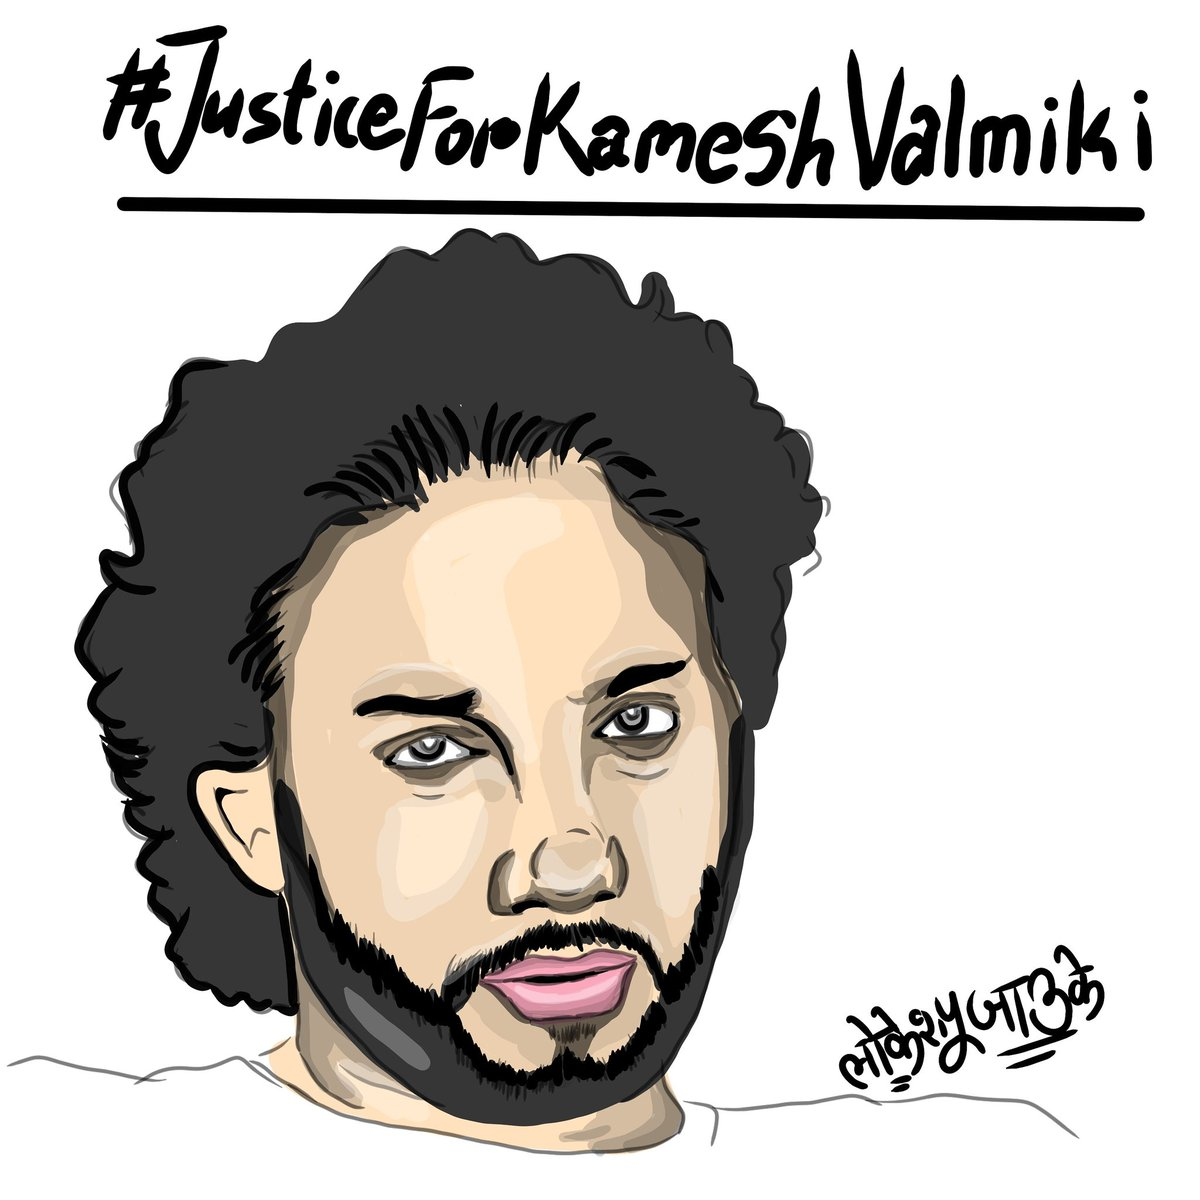 Say loudly #JusticeForKameshValmiki https://t.co/Xf3xYCHtmj